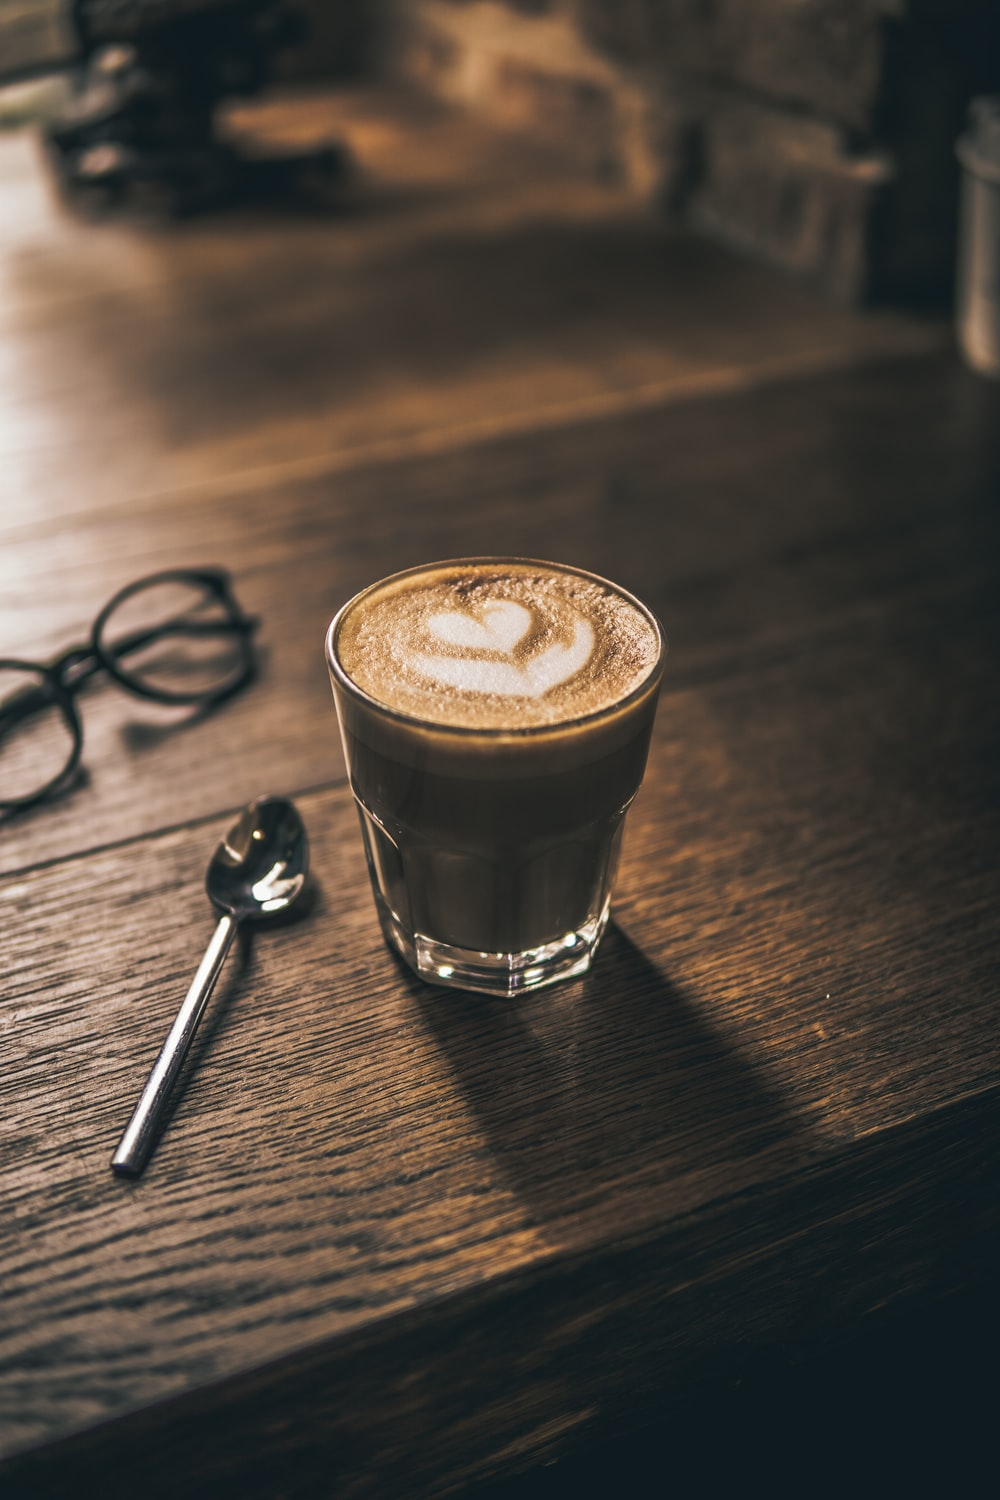 cappuccino with heart latte art on brown wooden table surface